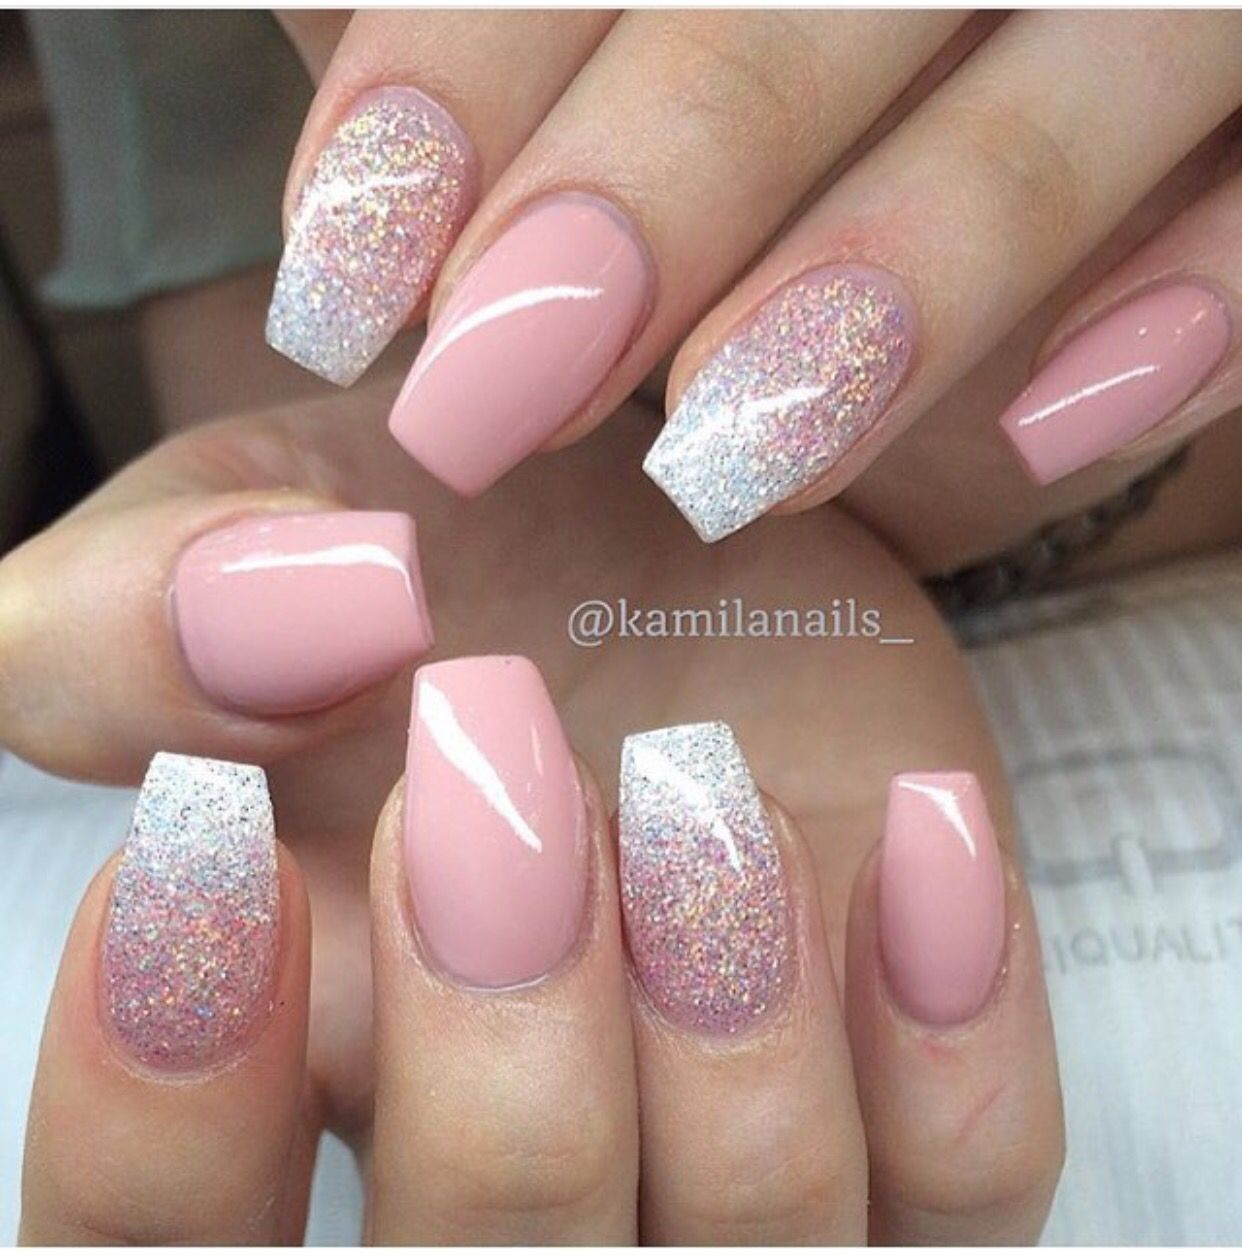 Probably My Favorite Nails Yet Ombre Pink Glitter And Flared White Tips White Tip Nails White Acrylic Nails Flare Nails